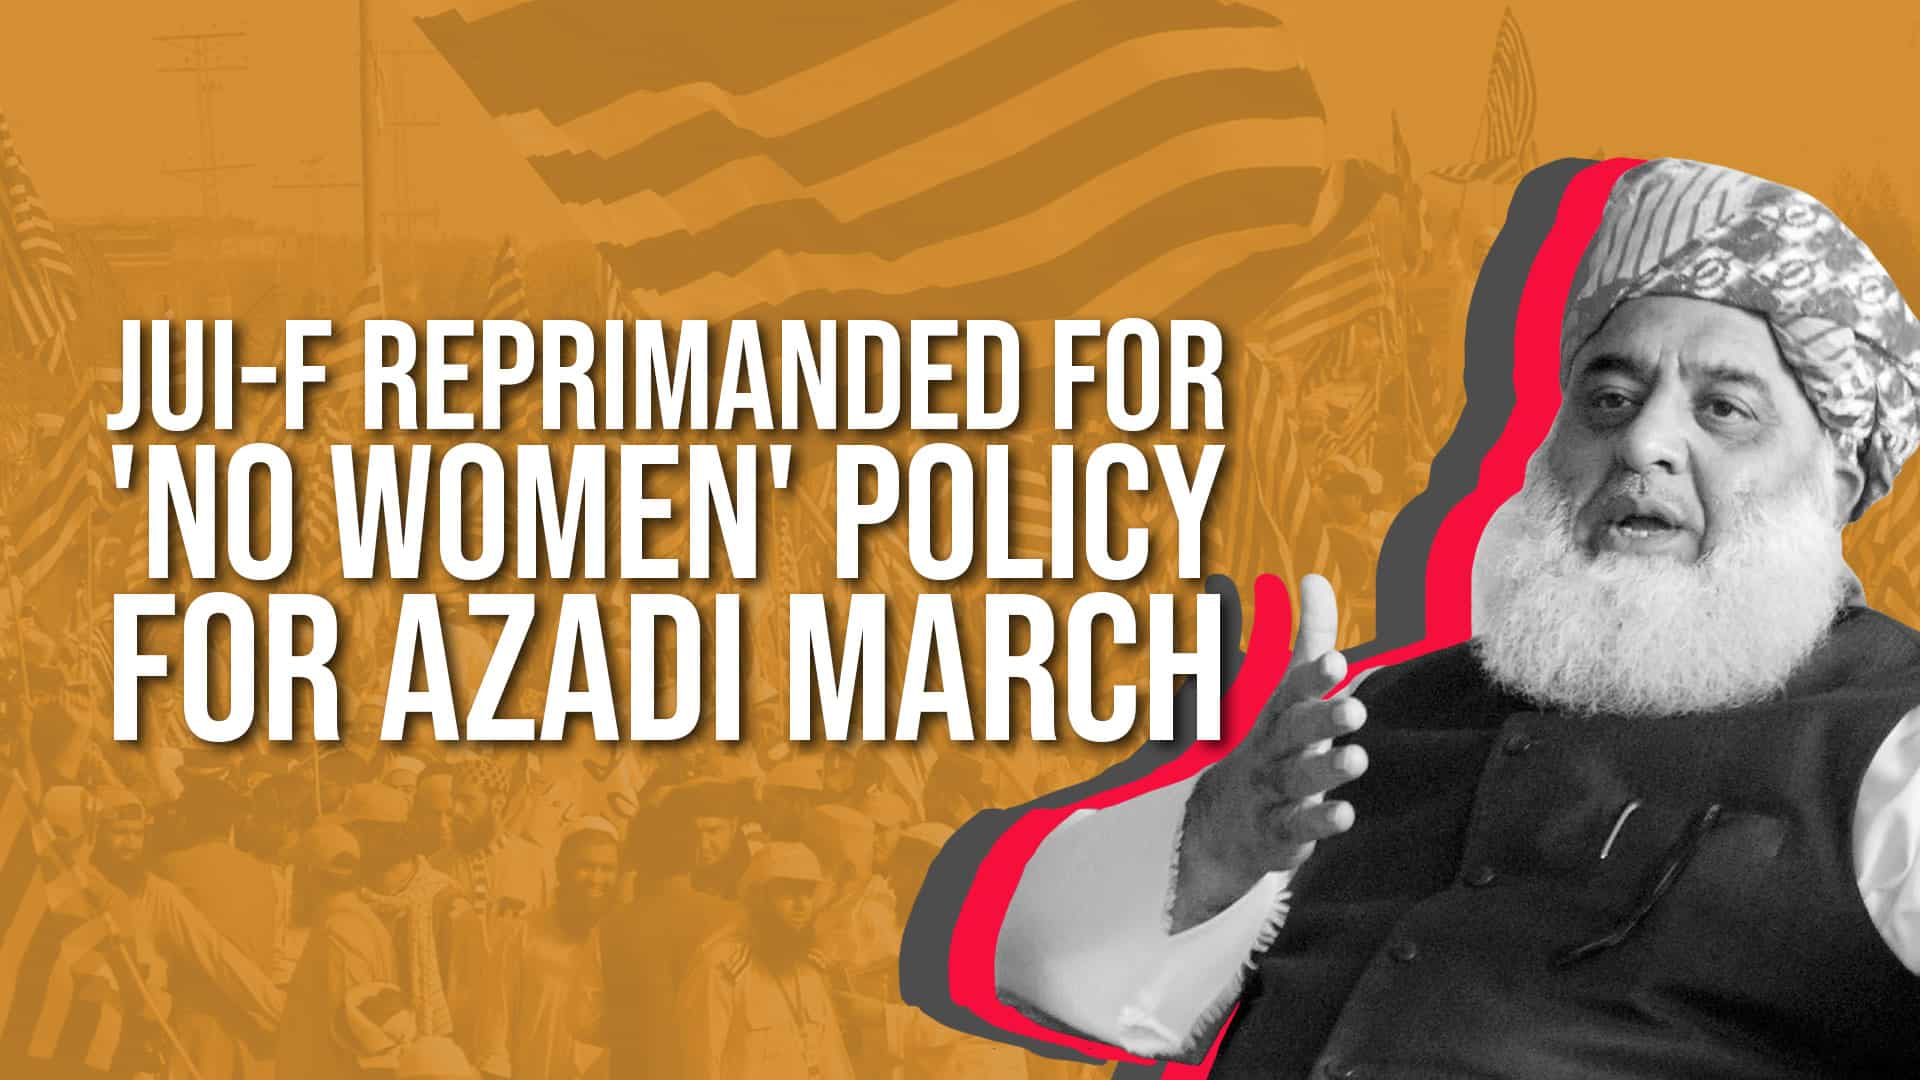 JUI-F Reprimanded for No Women Policy for Azadi March